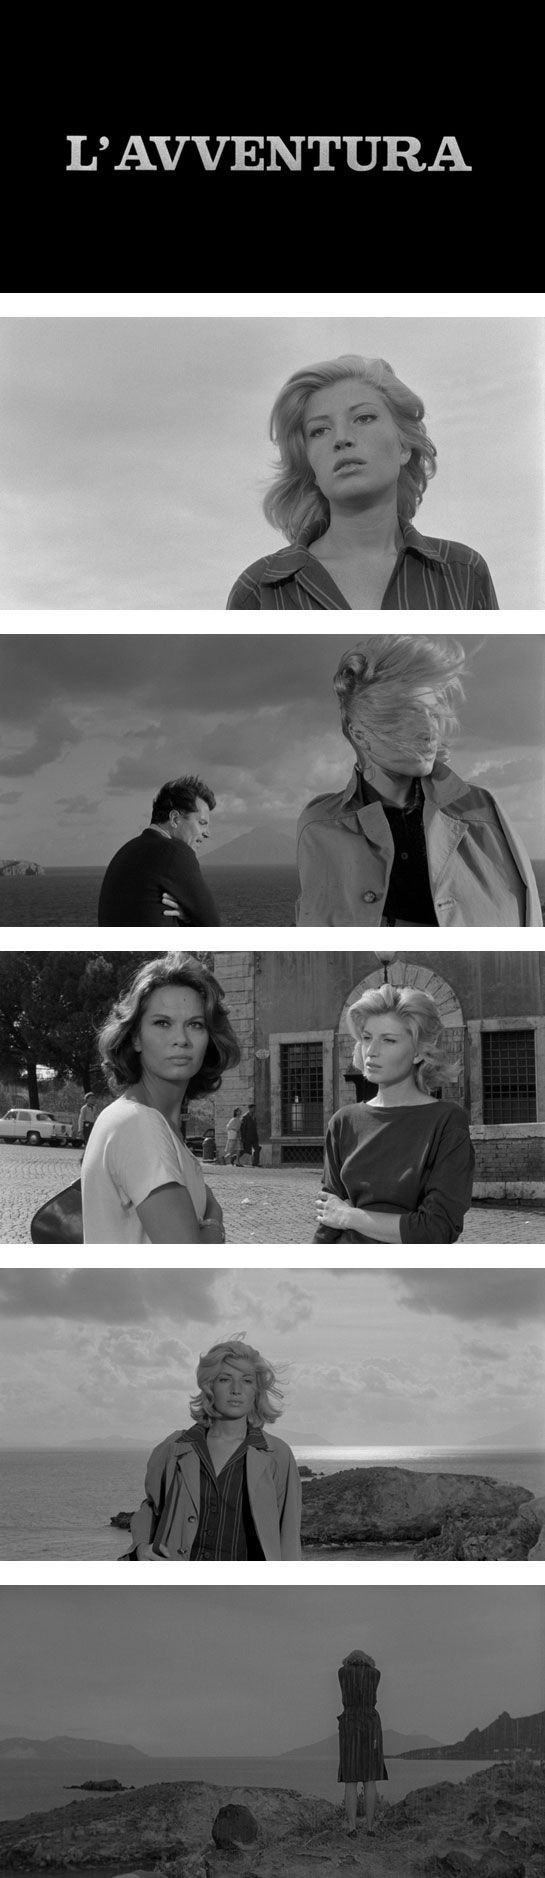 michelangelo antonioni and women in film Michelangelo antonioni, cavaliere di gran croce omri (29 september 1912 - 30 july 2007), was an italian film director, screenwriter, editor, and short story writer.